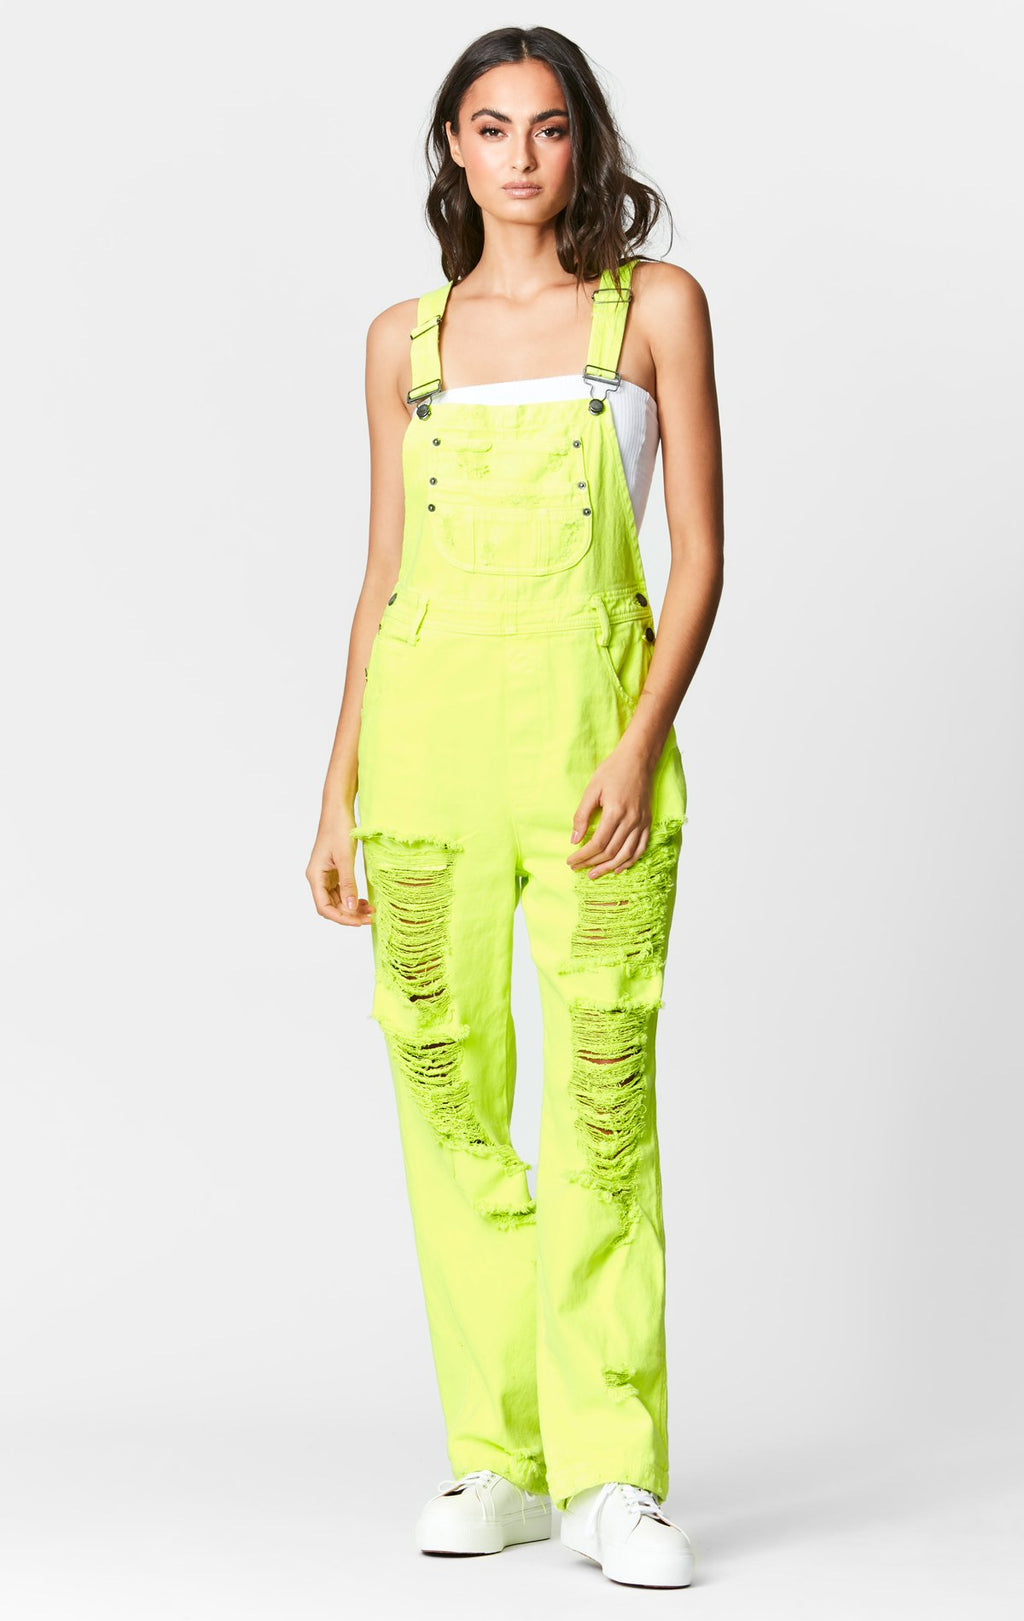 CARMAR DENIM NEON LIME OVERDYE DENIM OVERALL